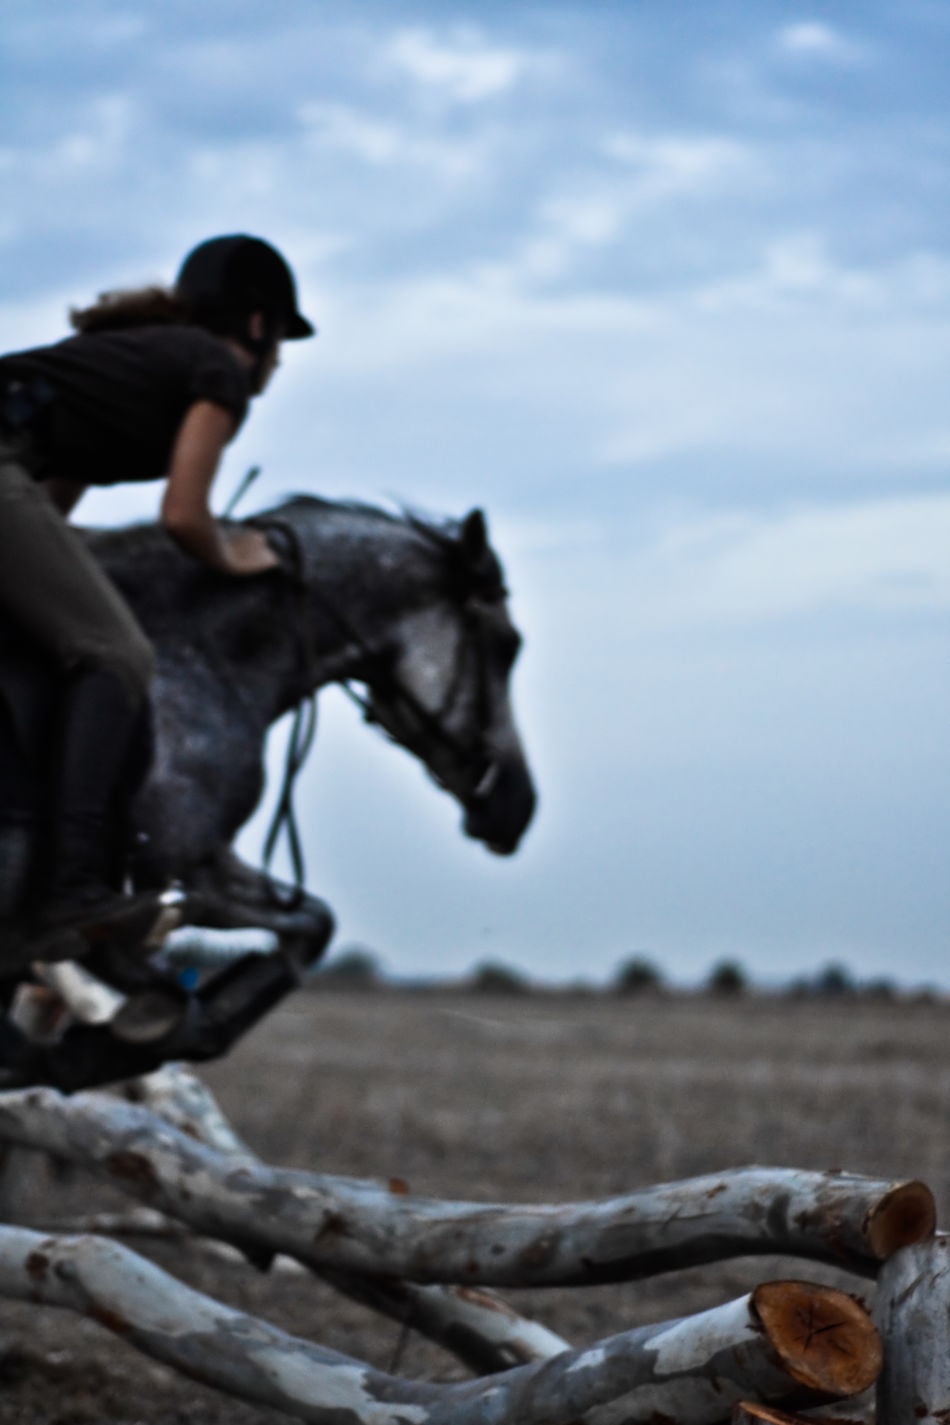 Cavalry Woman Farm Fast Moving Horse Jumping Horse Riding Knight  Rider Wooden Barriers Adventurr Time